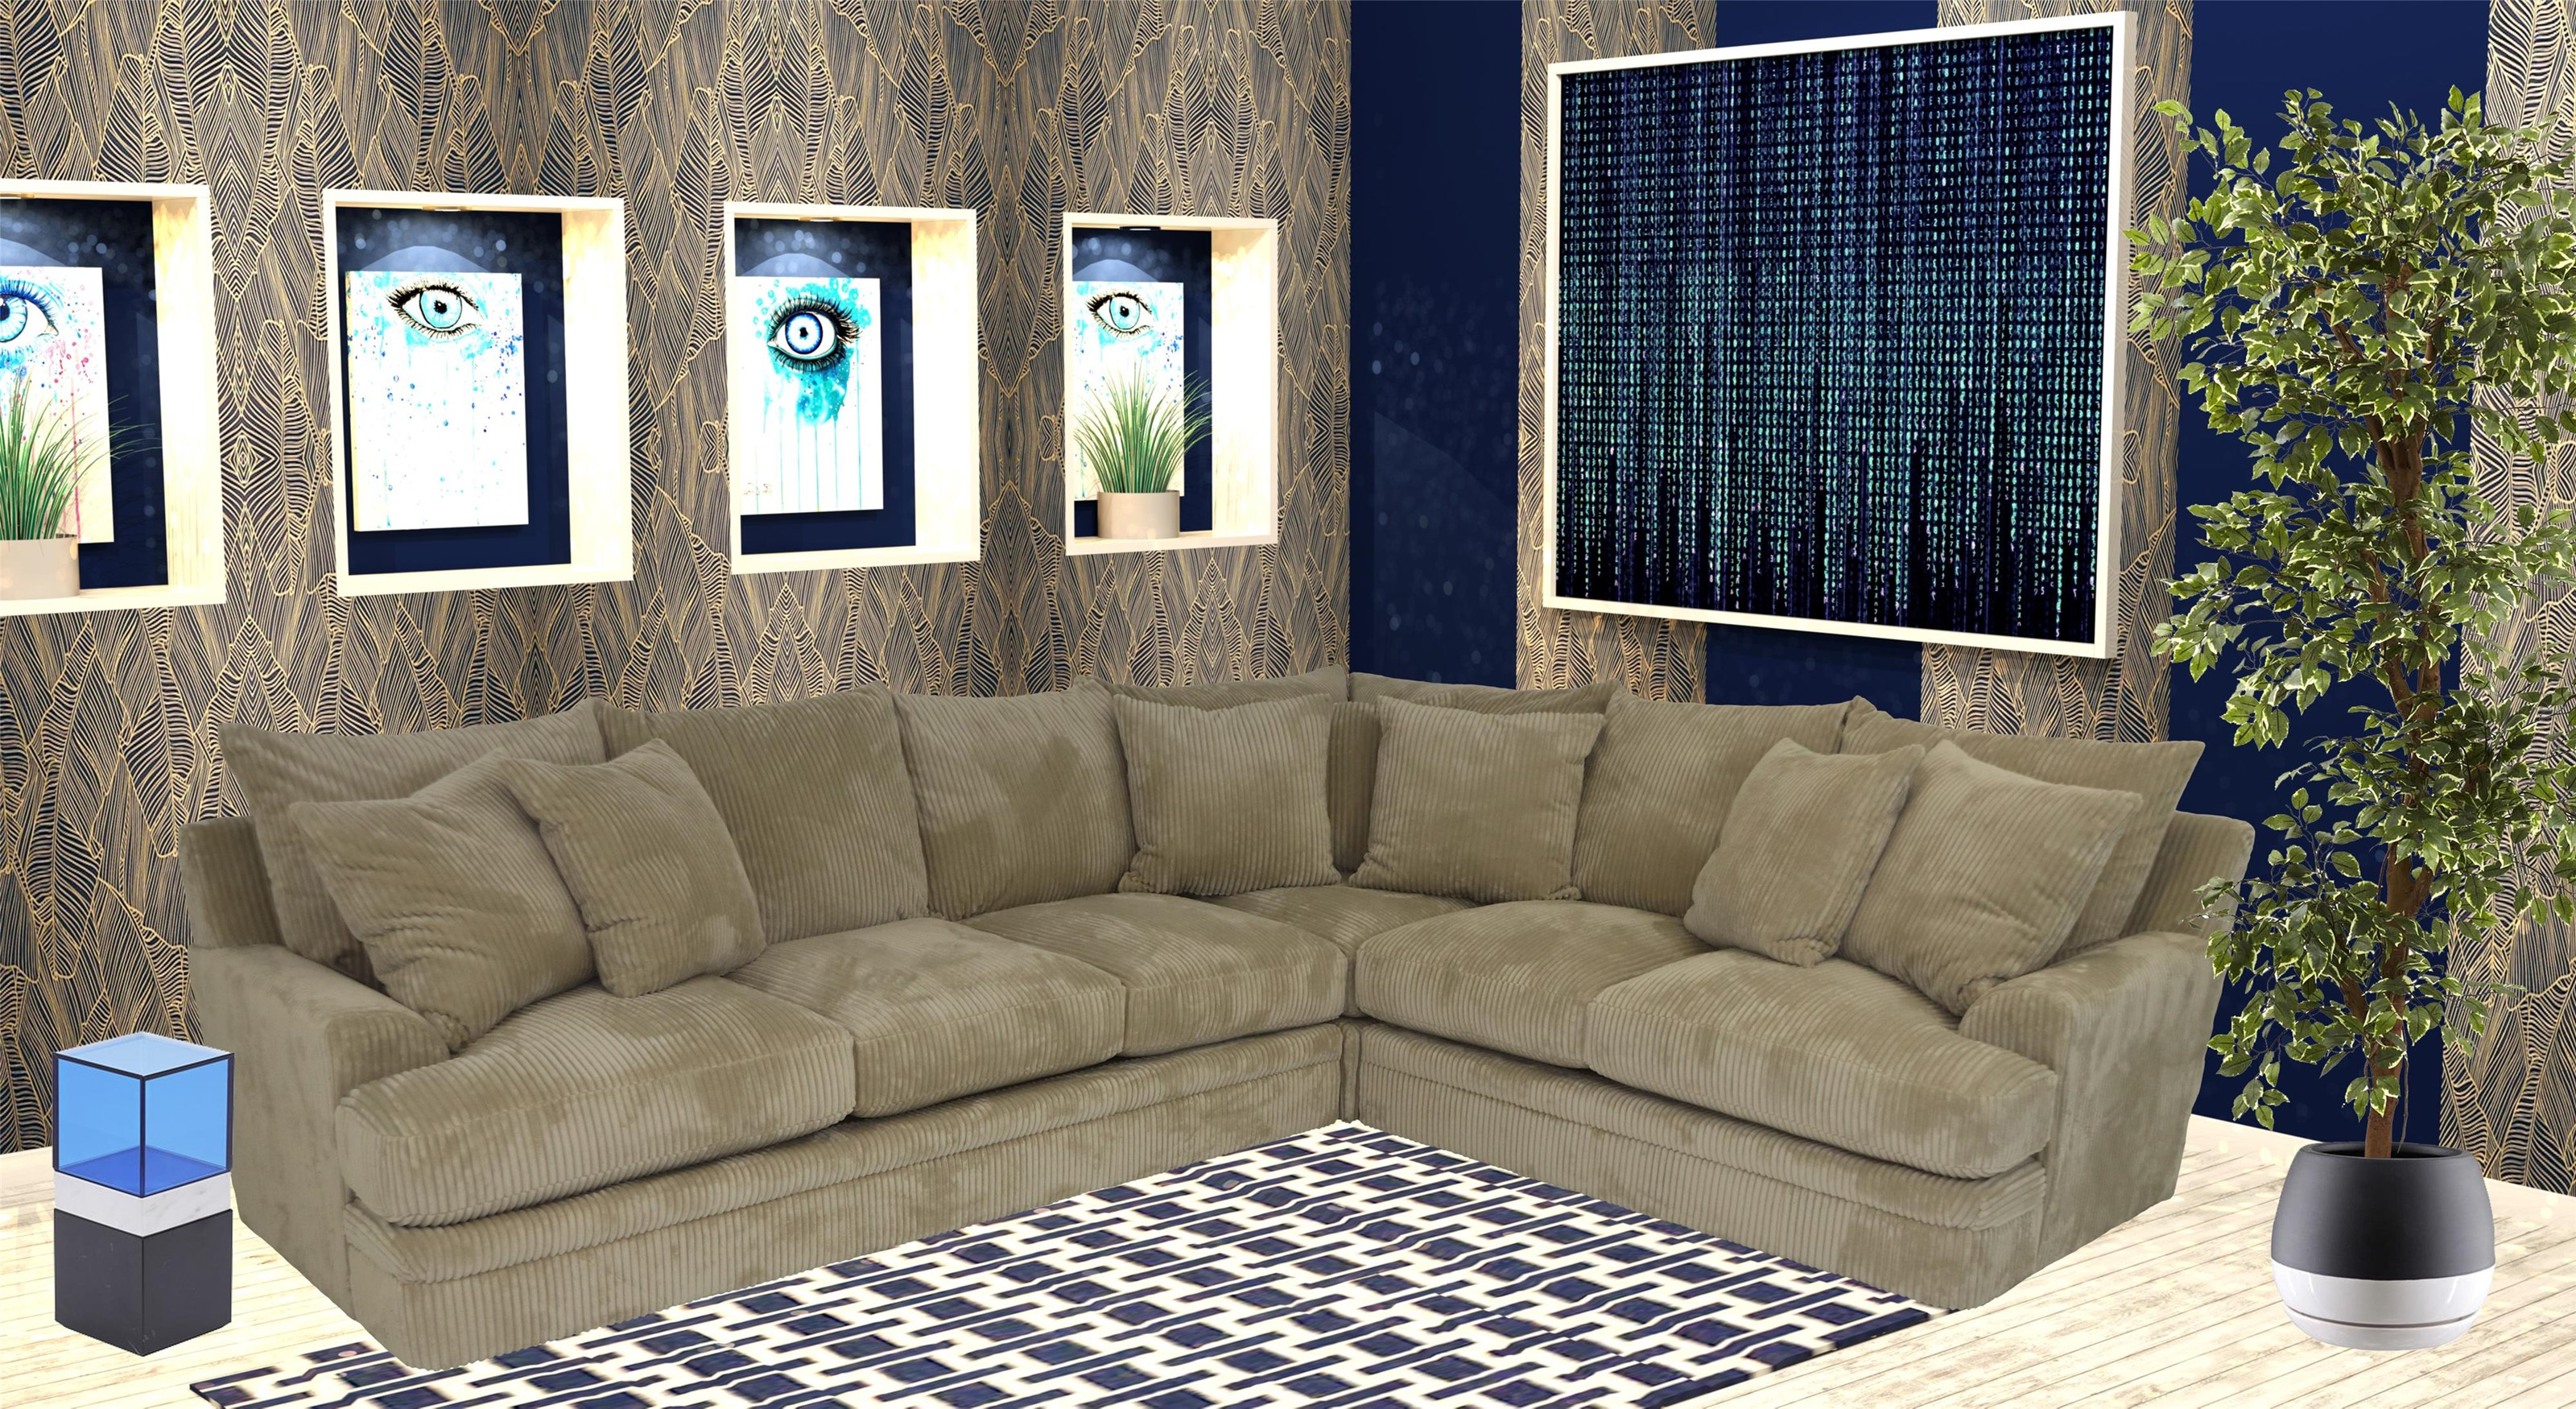 Reeds Trading Company 8000 3 Piece Sectional - Item Number: 8000-Corner+Raf Love+Laf Sofa